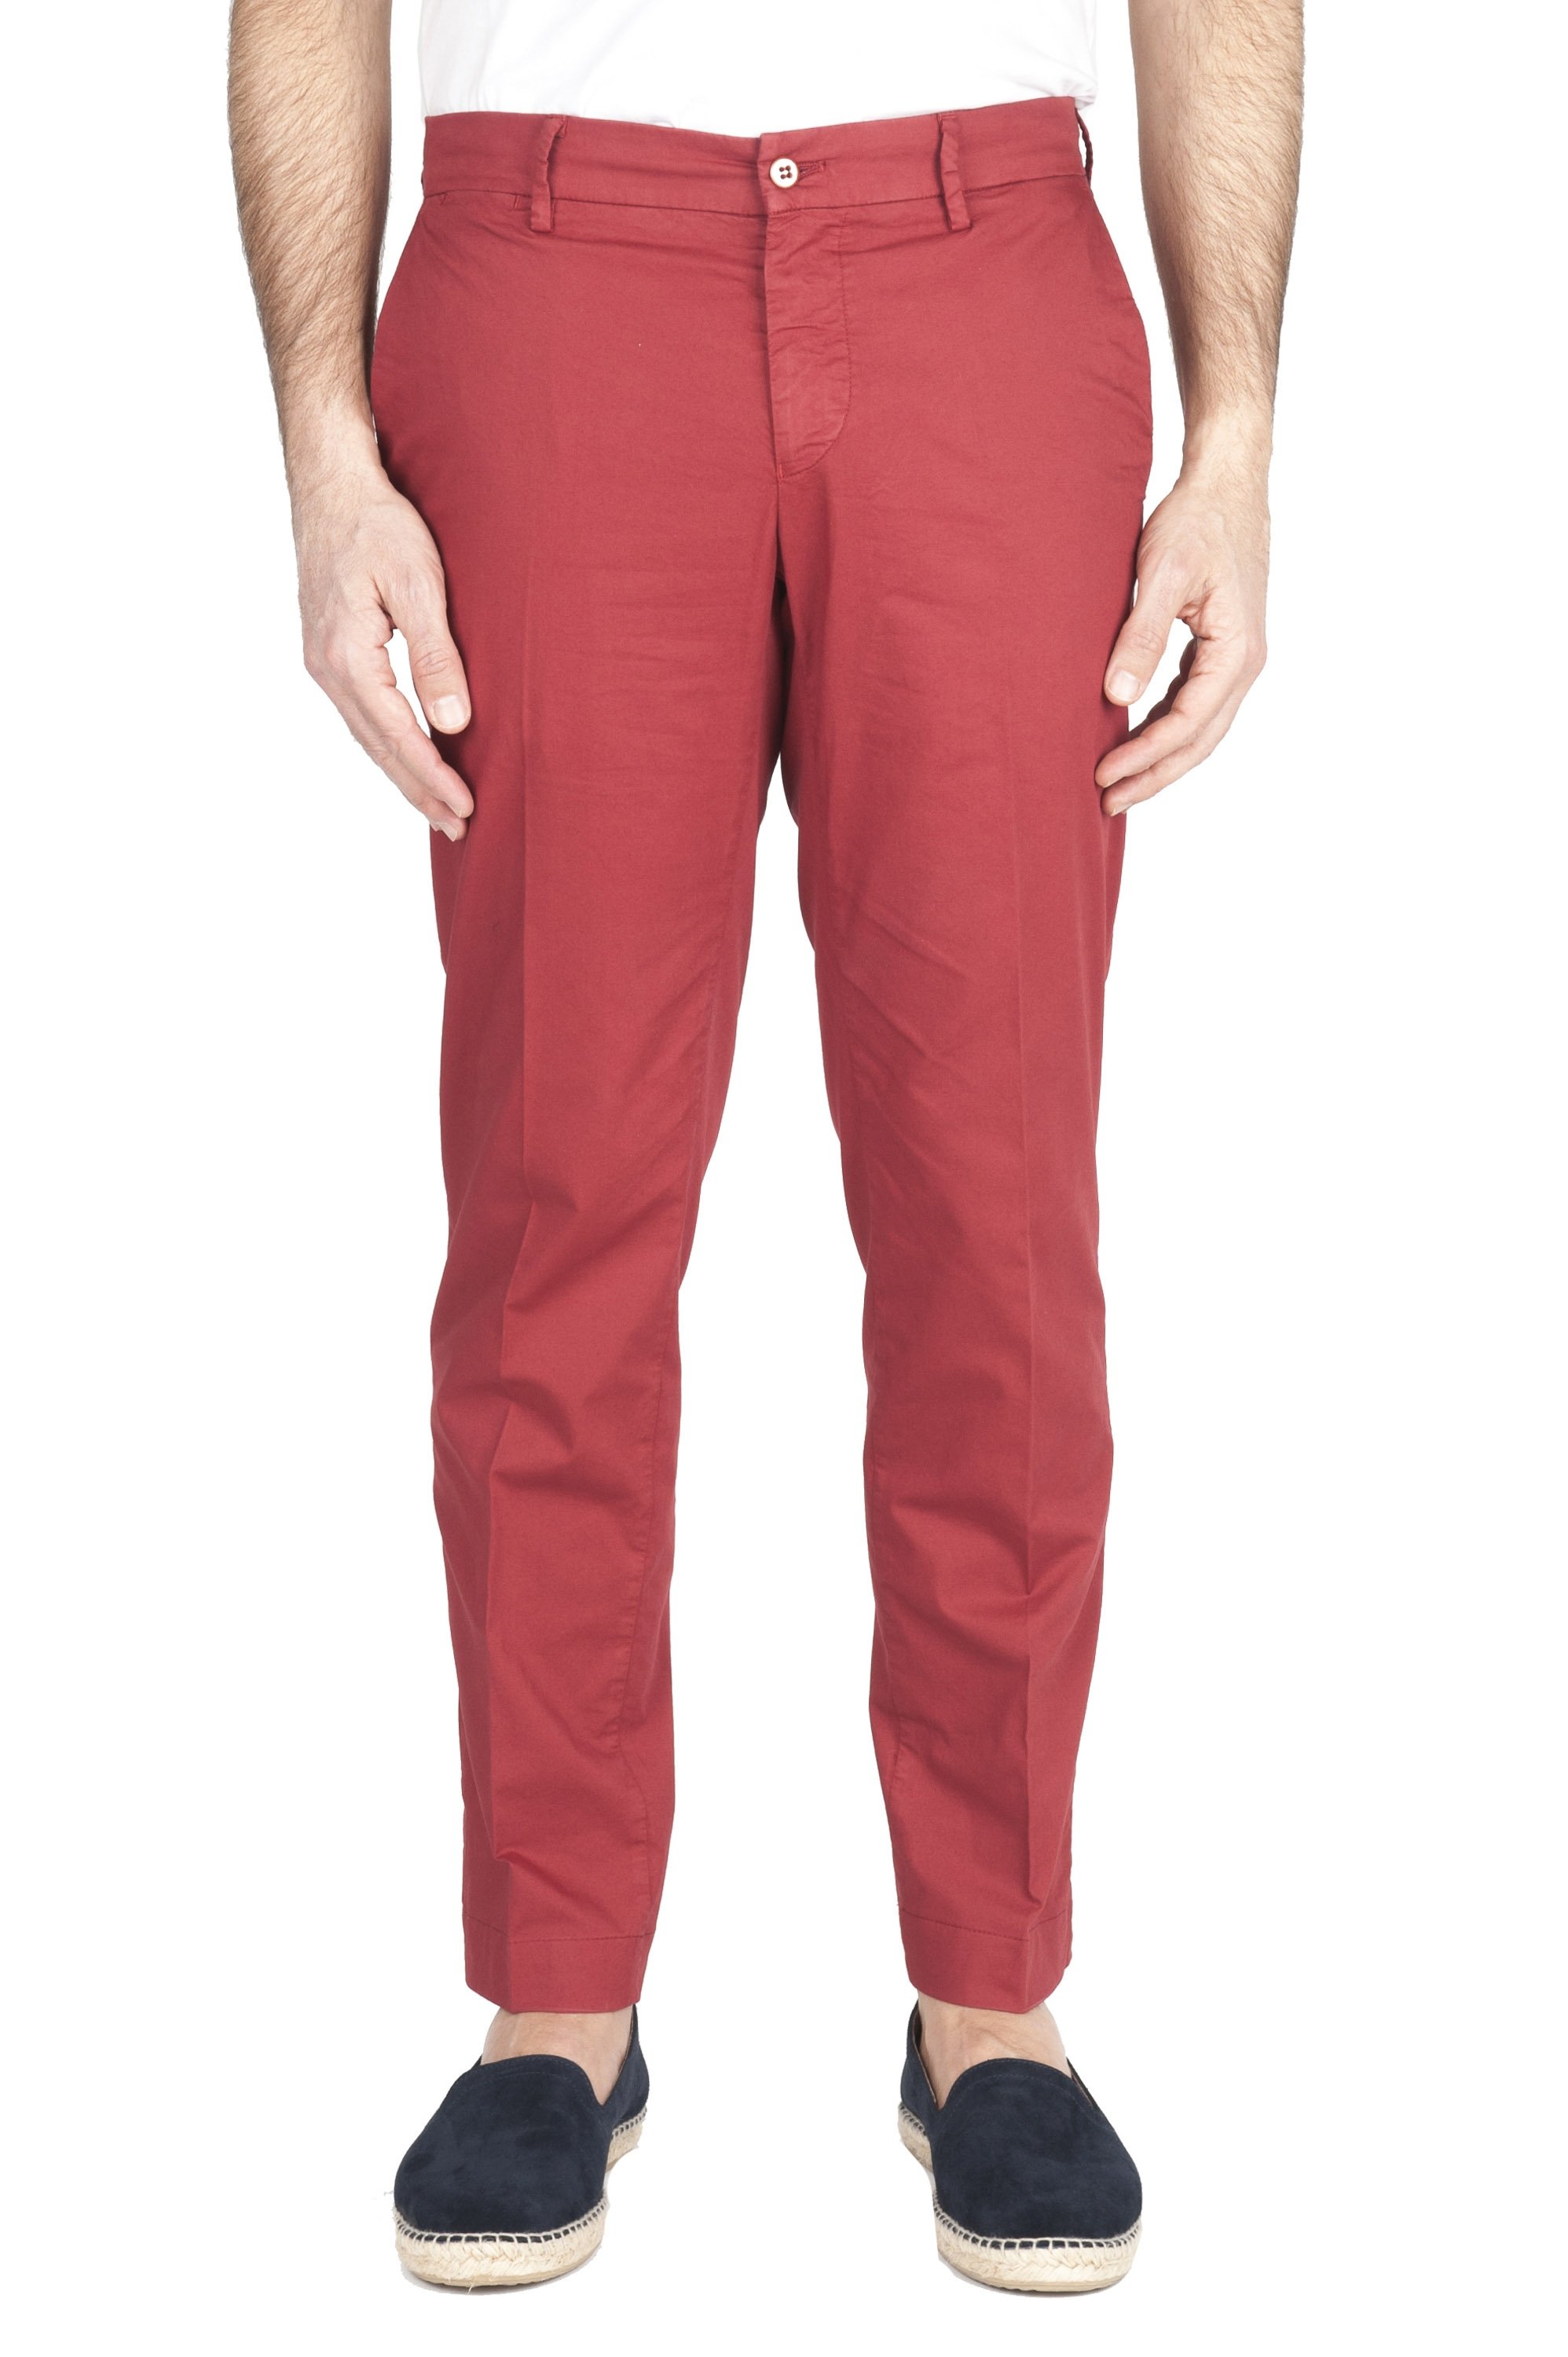 SBU 01963_2020SS Classic chino pants in red stretch cotton 01